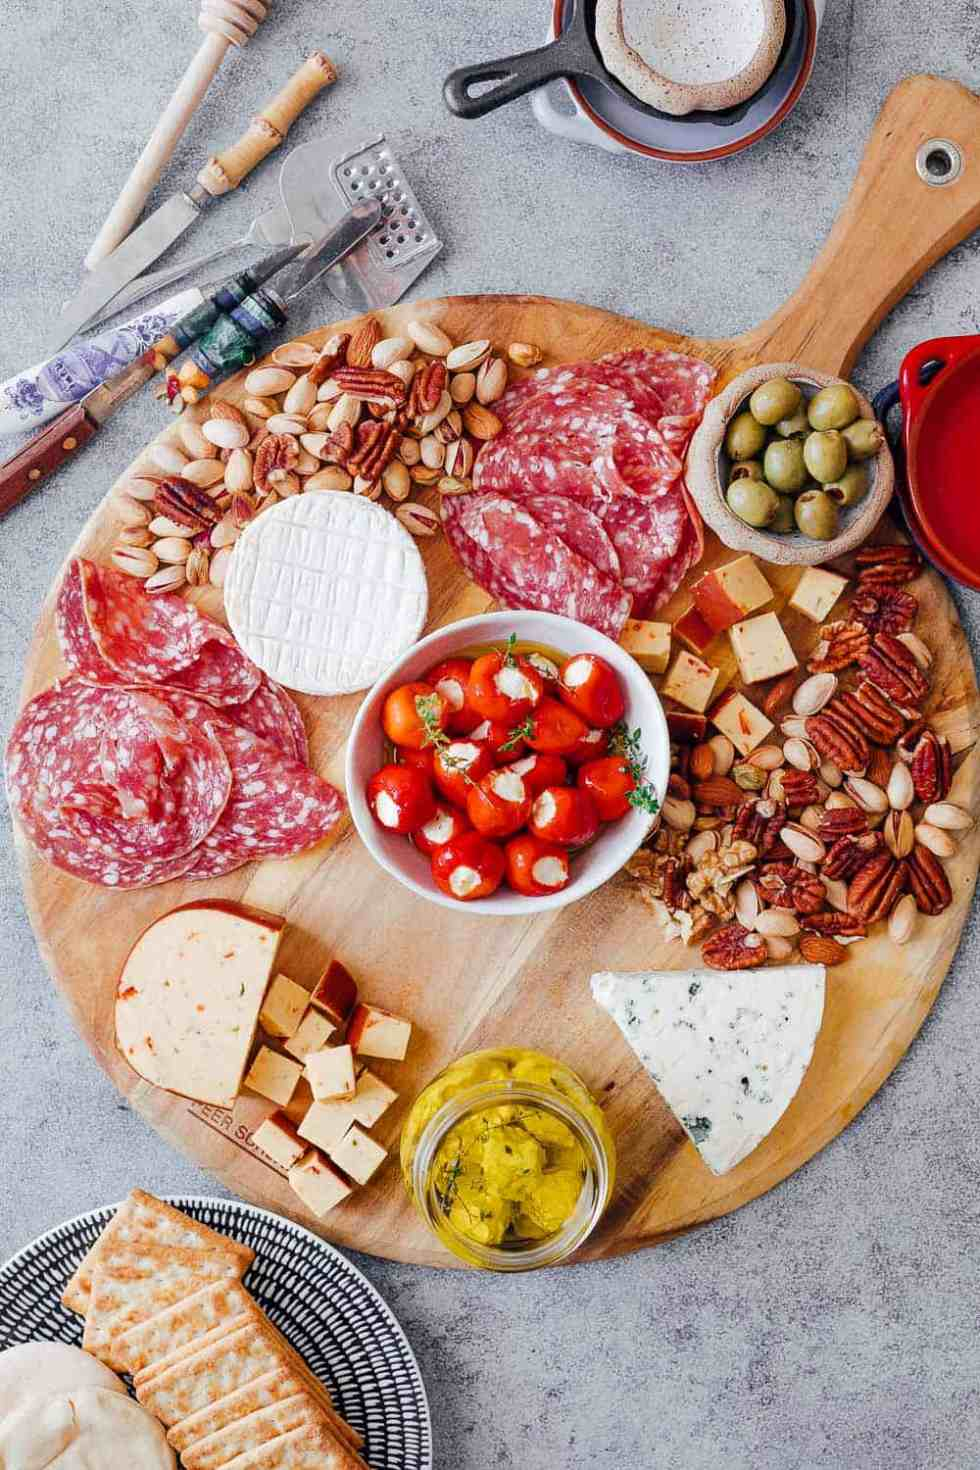 Step #4 is to add salty nibbles such as olives, stuffed peppers, labneh etc to the ultimate wine and cheese board. Pick things that are already in your pantry so that you don't spend on anything additional